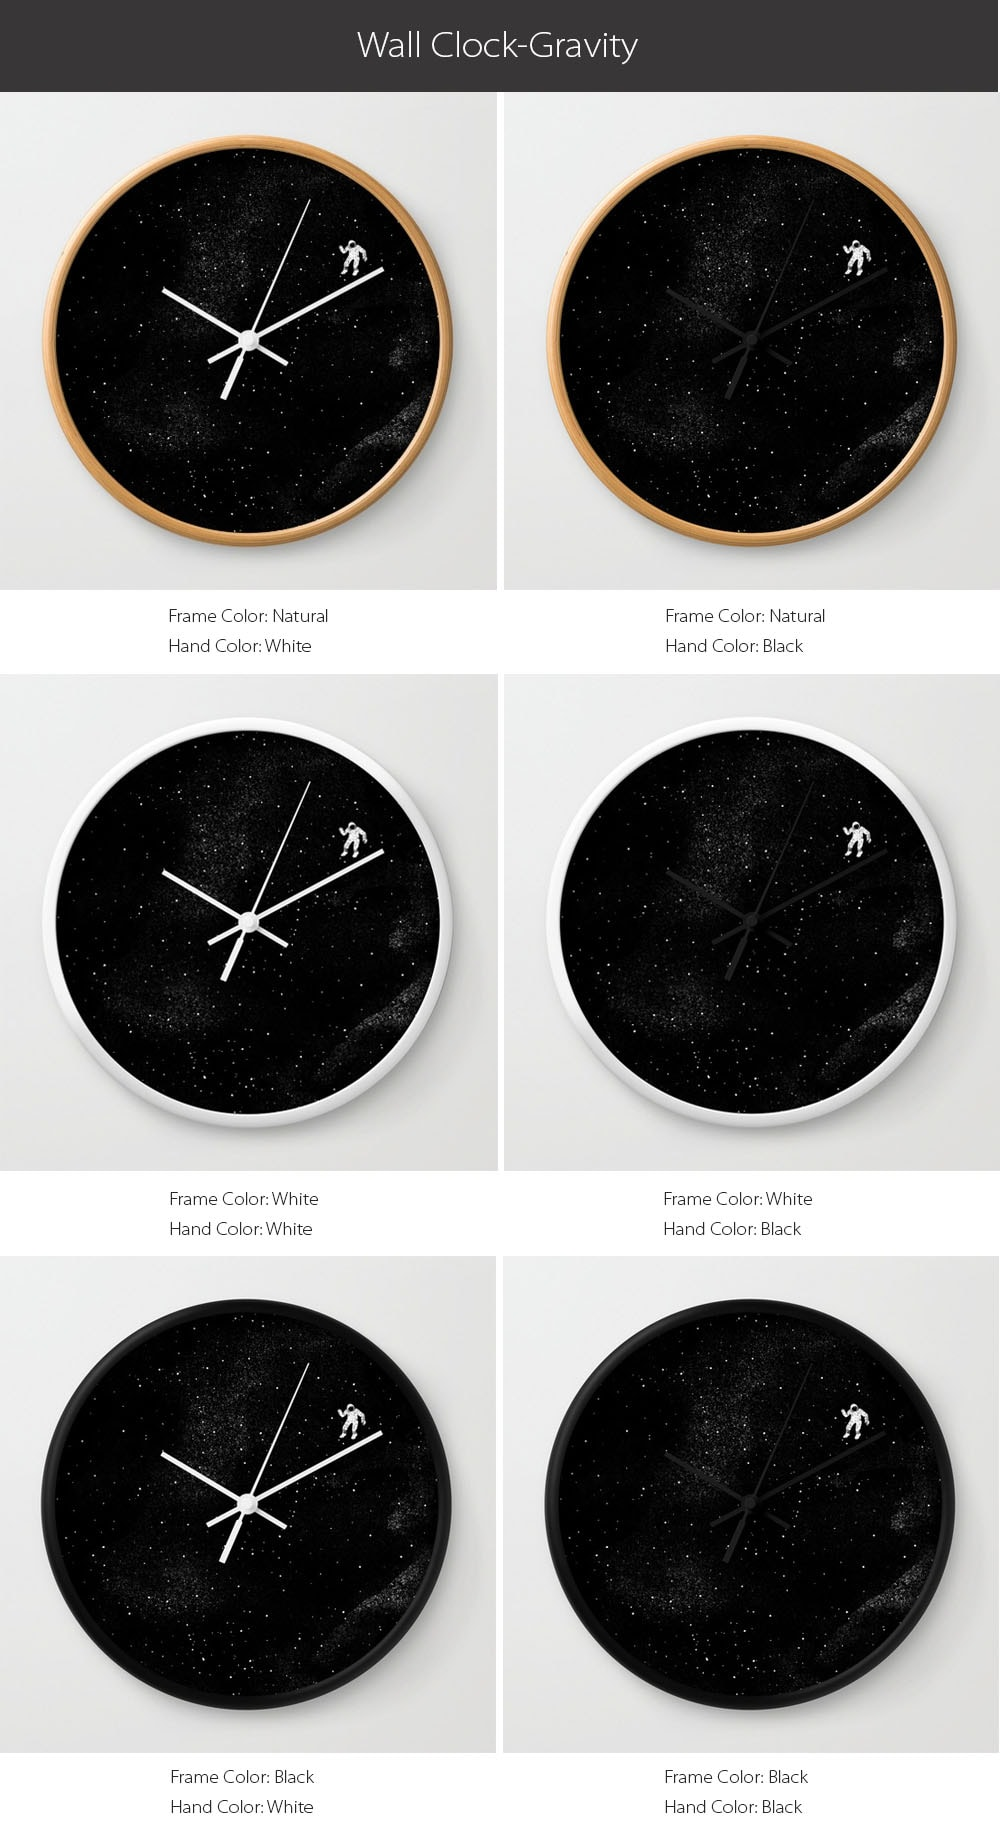 Gravity Wall Clock Inspired by the Movie